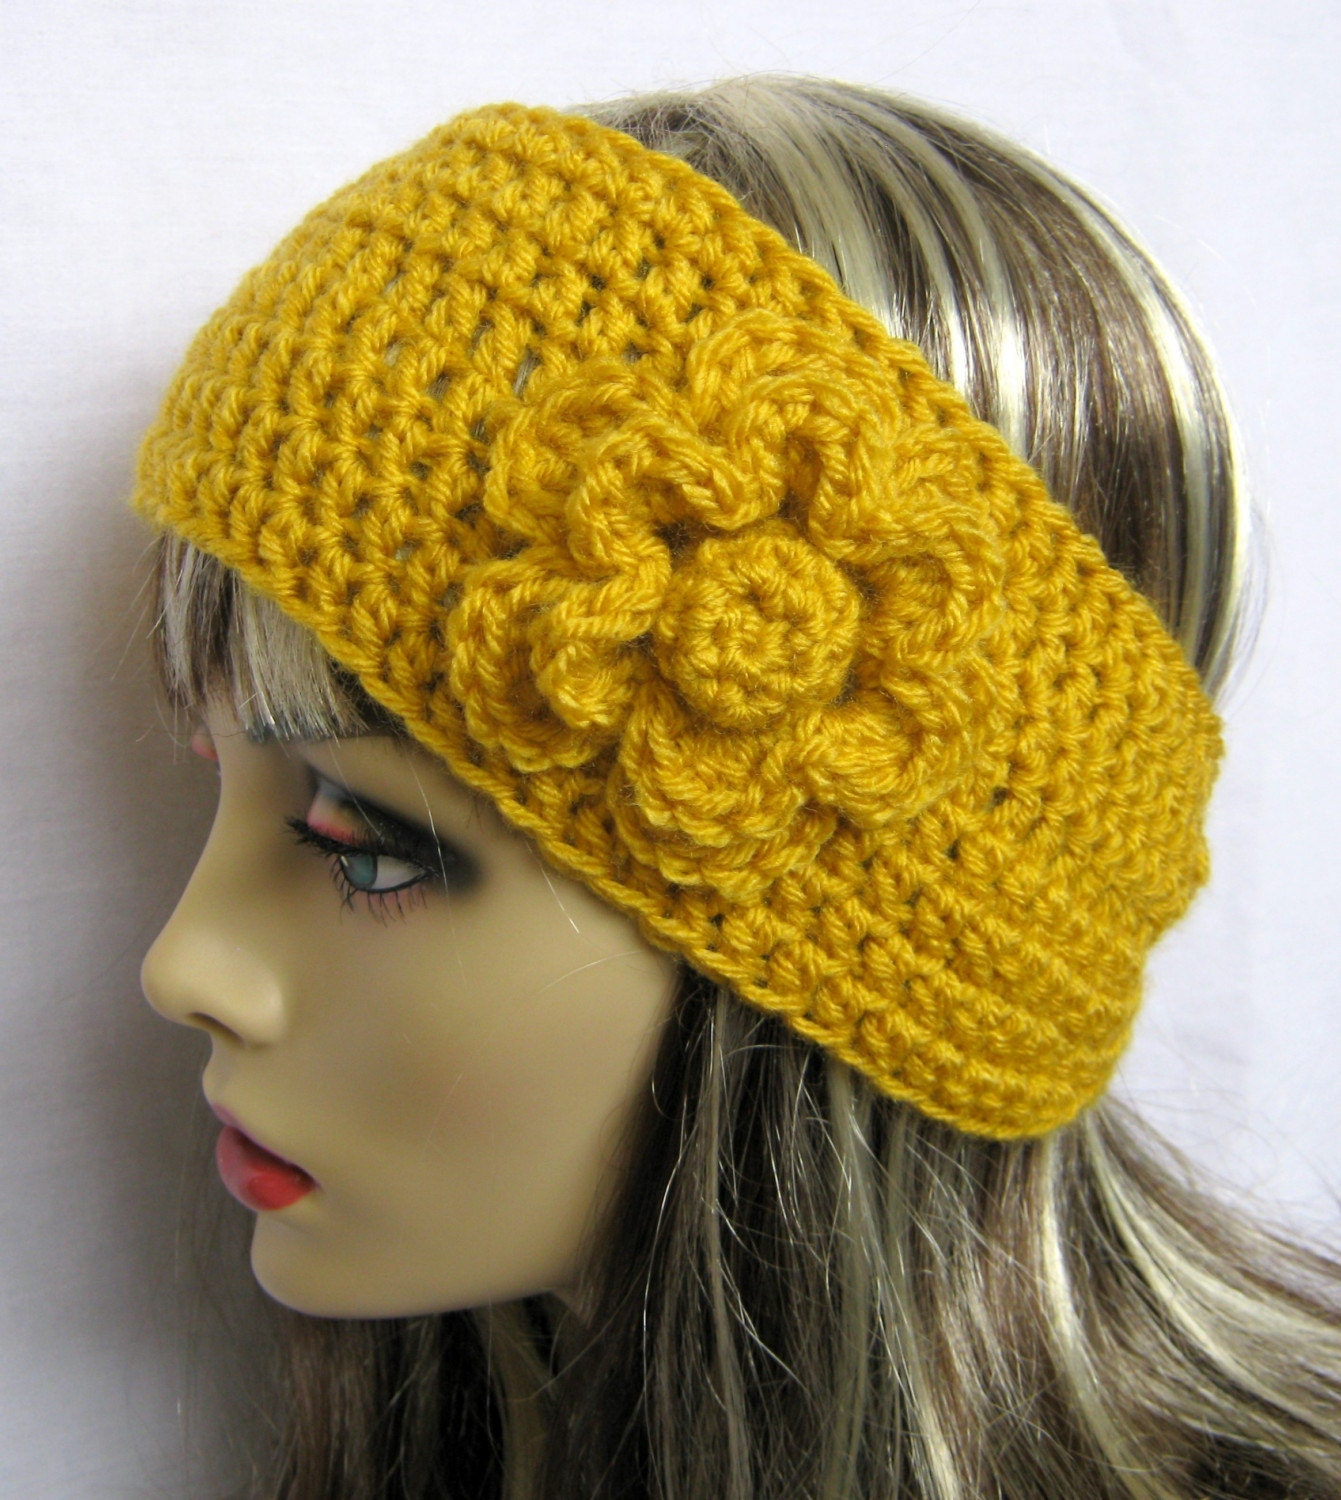 Crochet Pattern: Checkered Headband